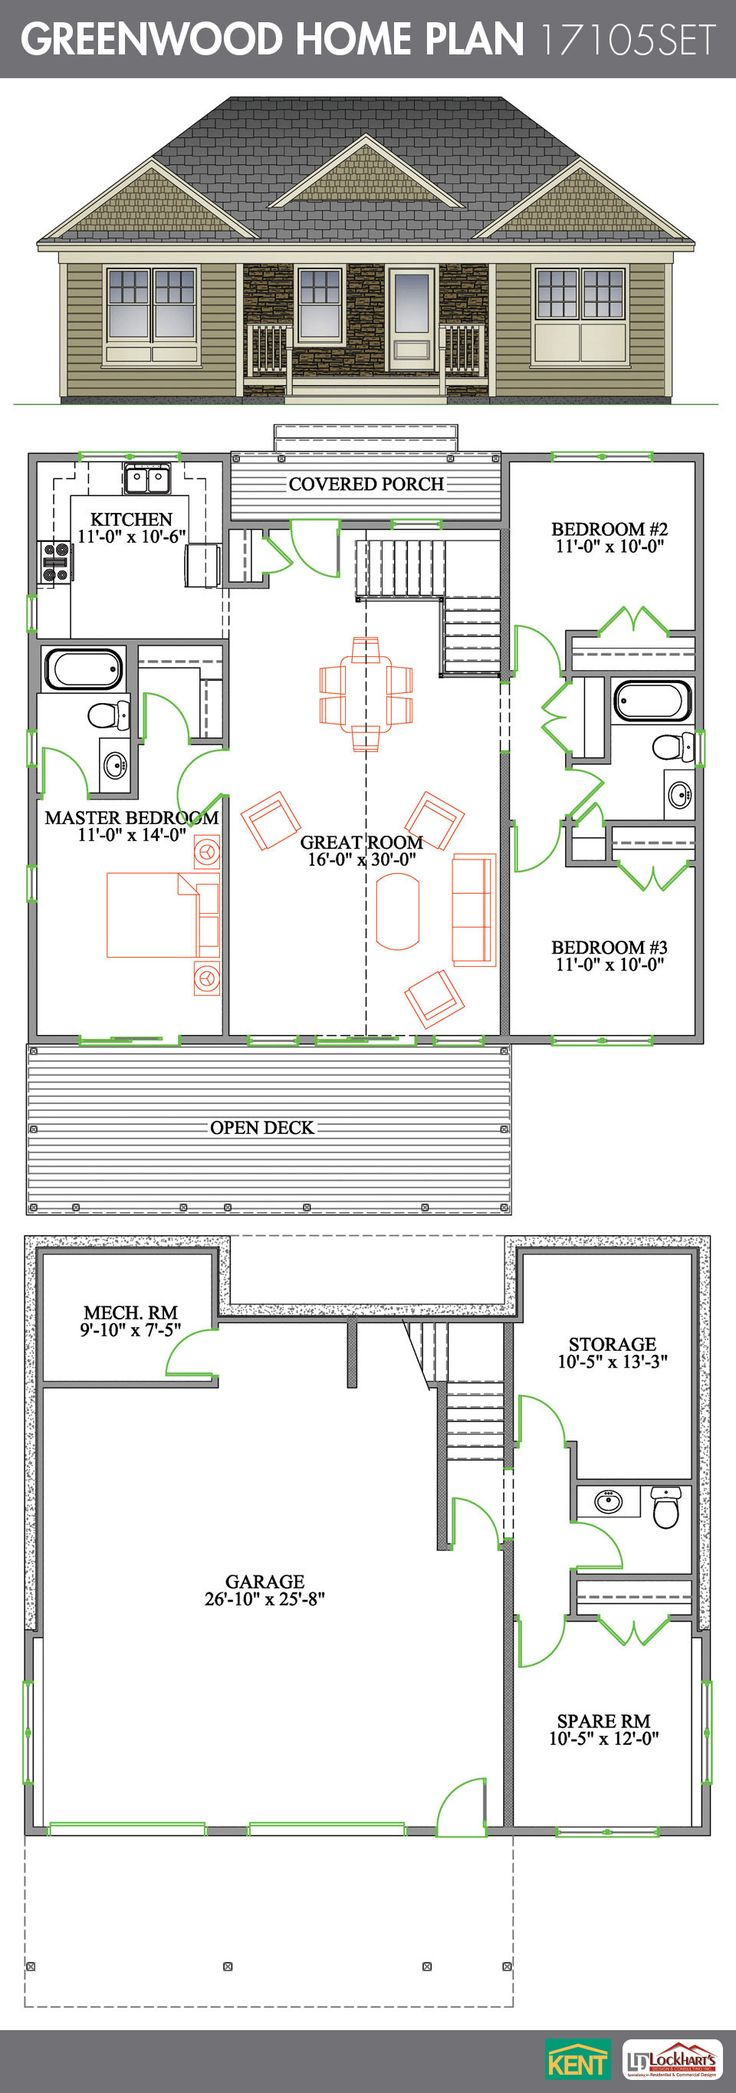 Greenwood 4 bedroom 2 1 2 bathroom home plan features for Cathedral ceiling house plans